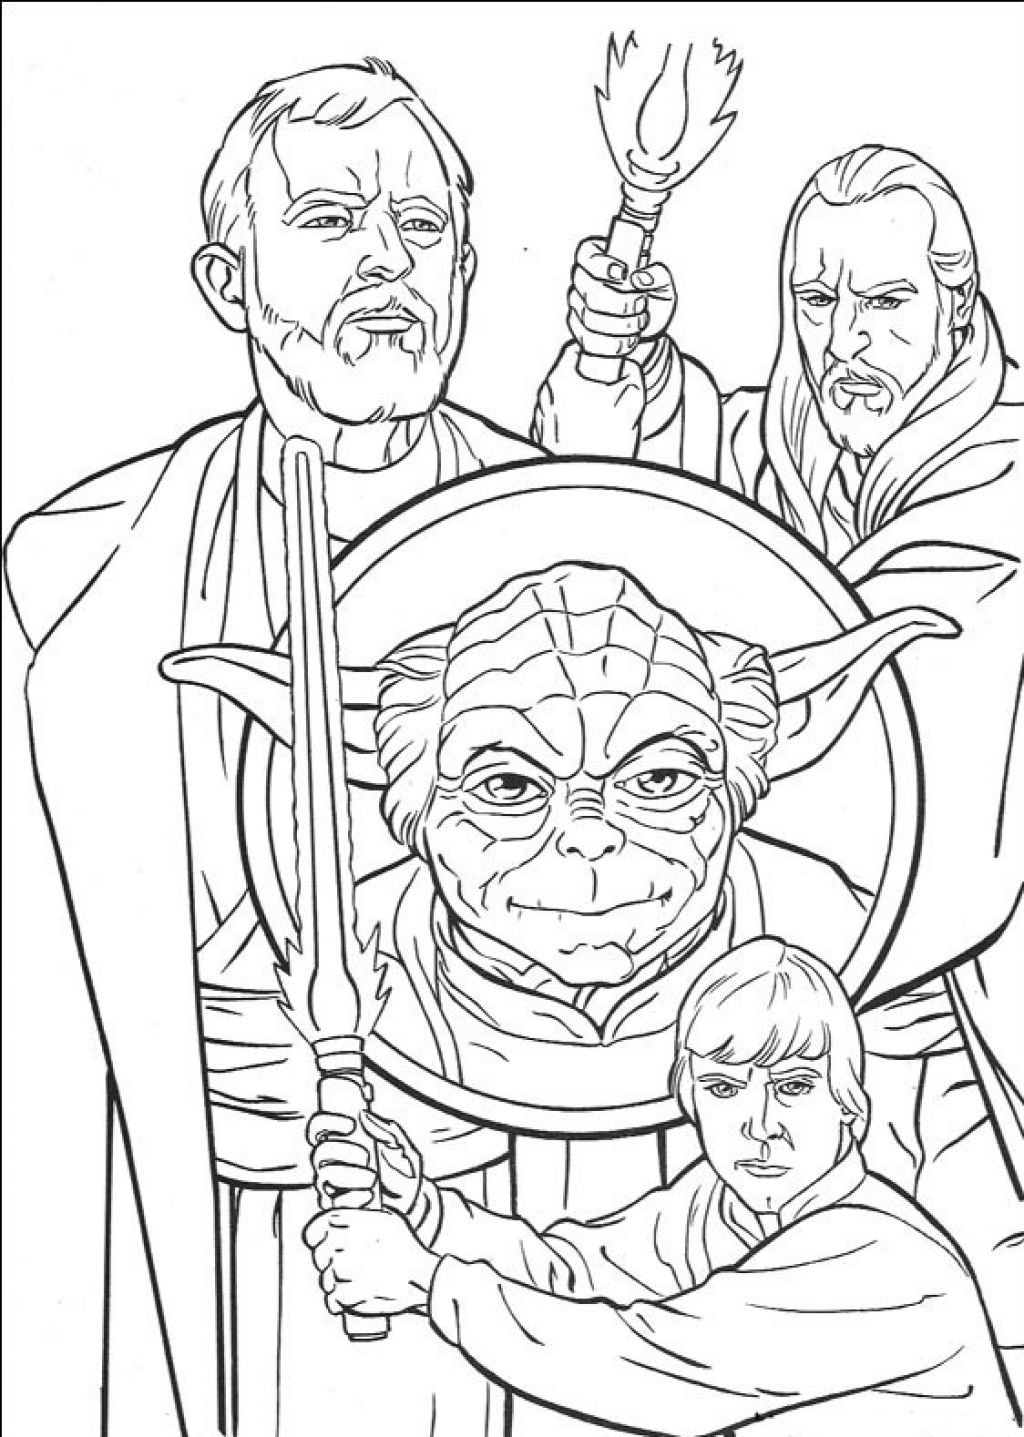 star wars coloring pages for kids star wars to color for children star wars kids coloring star pages for wars kids coloring